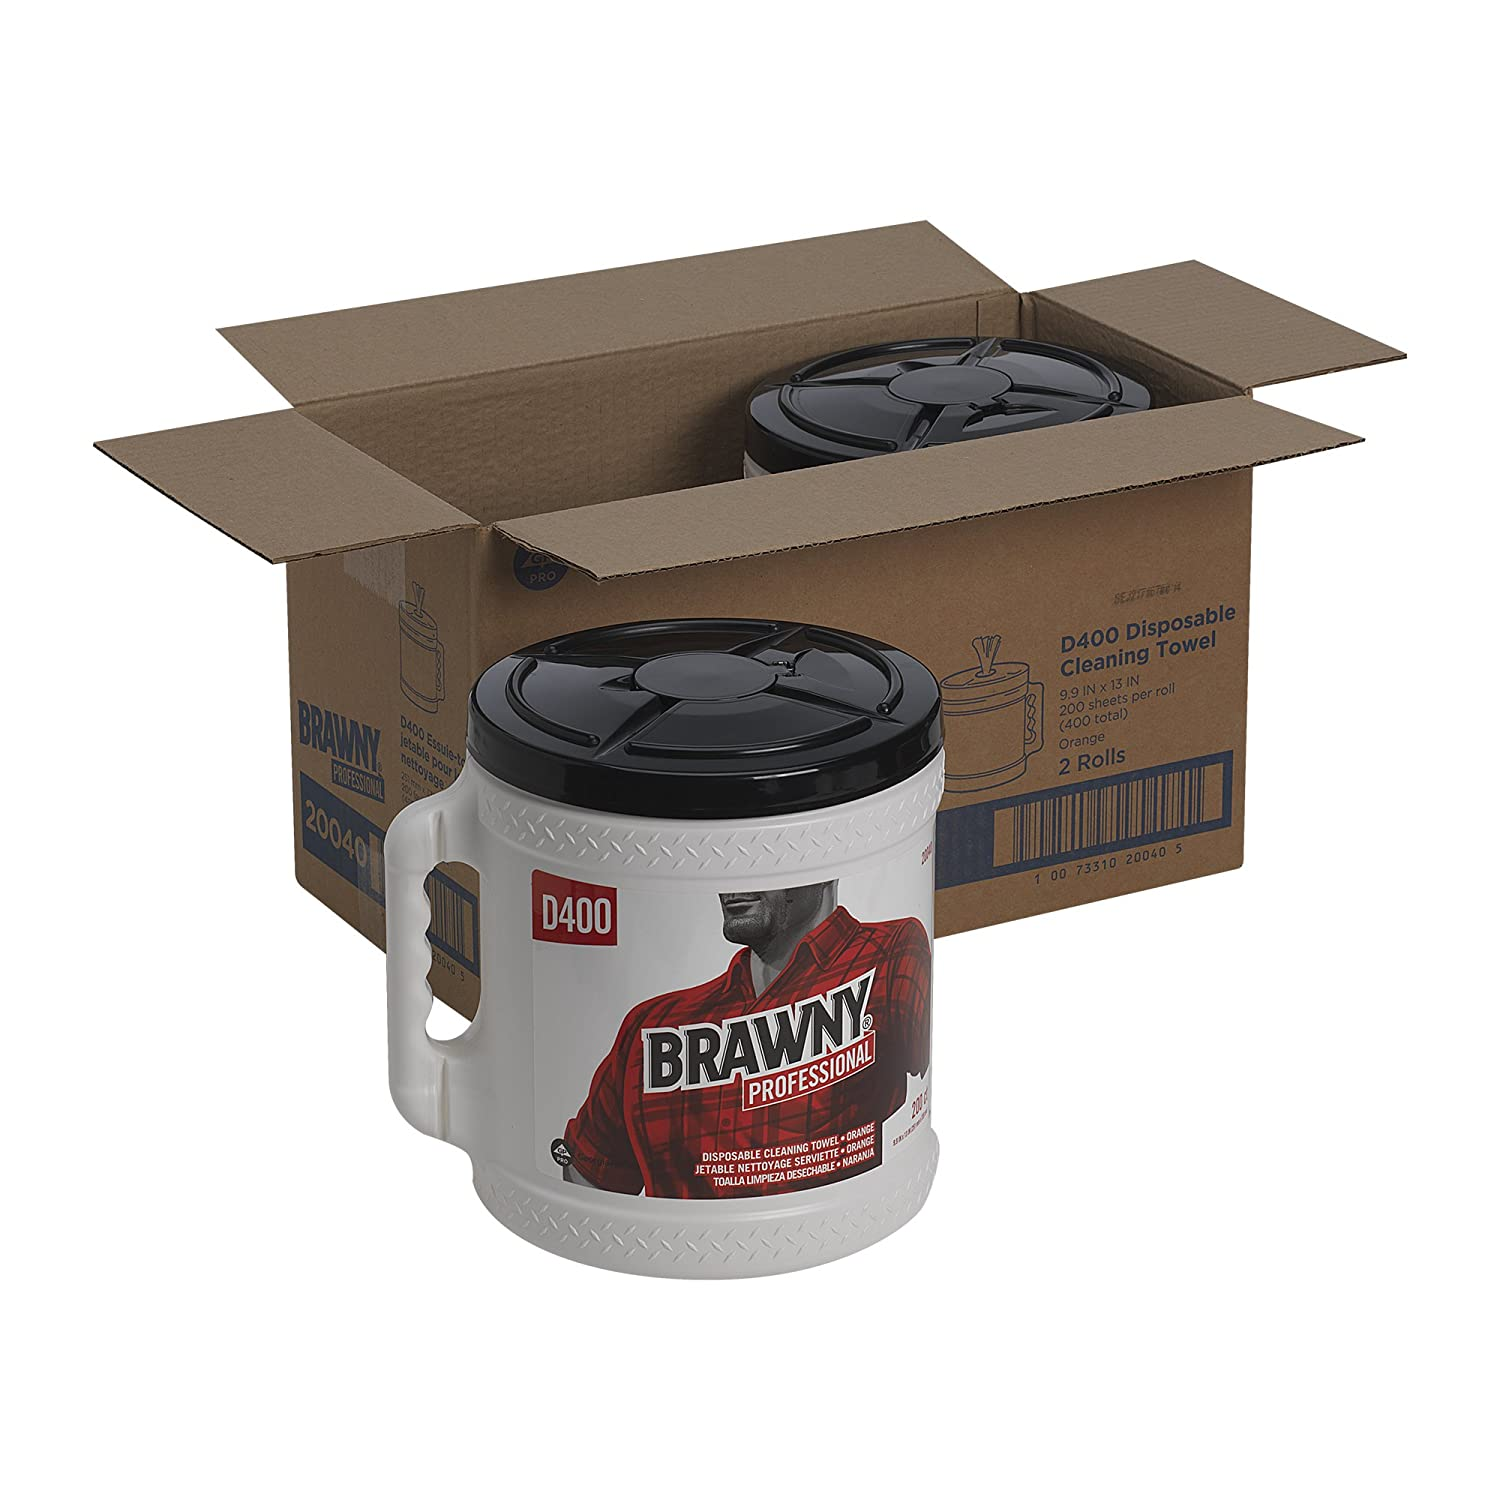 Amazon.com: GP Brawny Professional D400 Disposable Cleaning Towel, Bucket, Oatmeal: Home Improvement